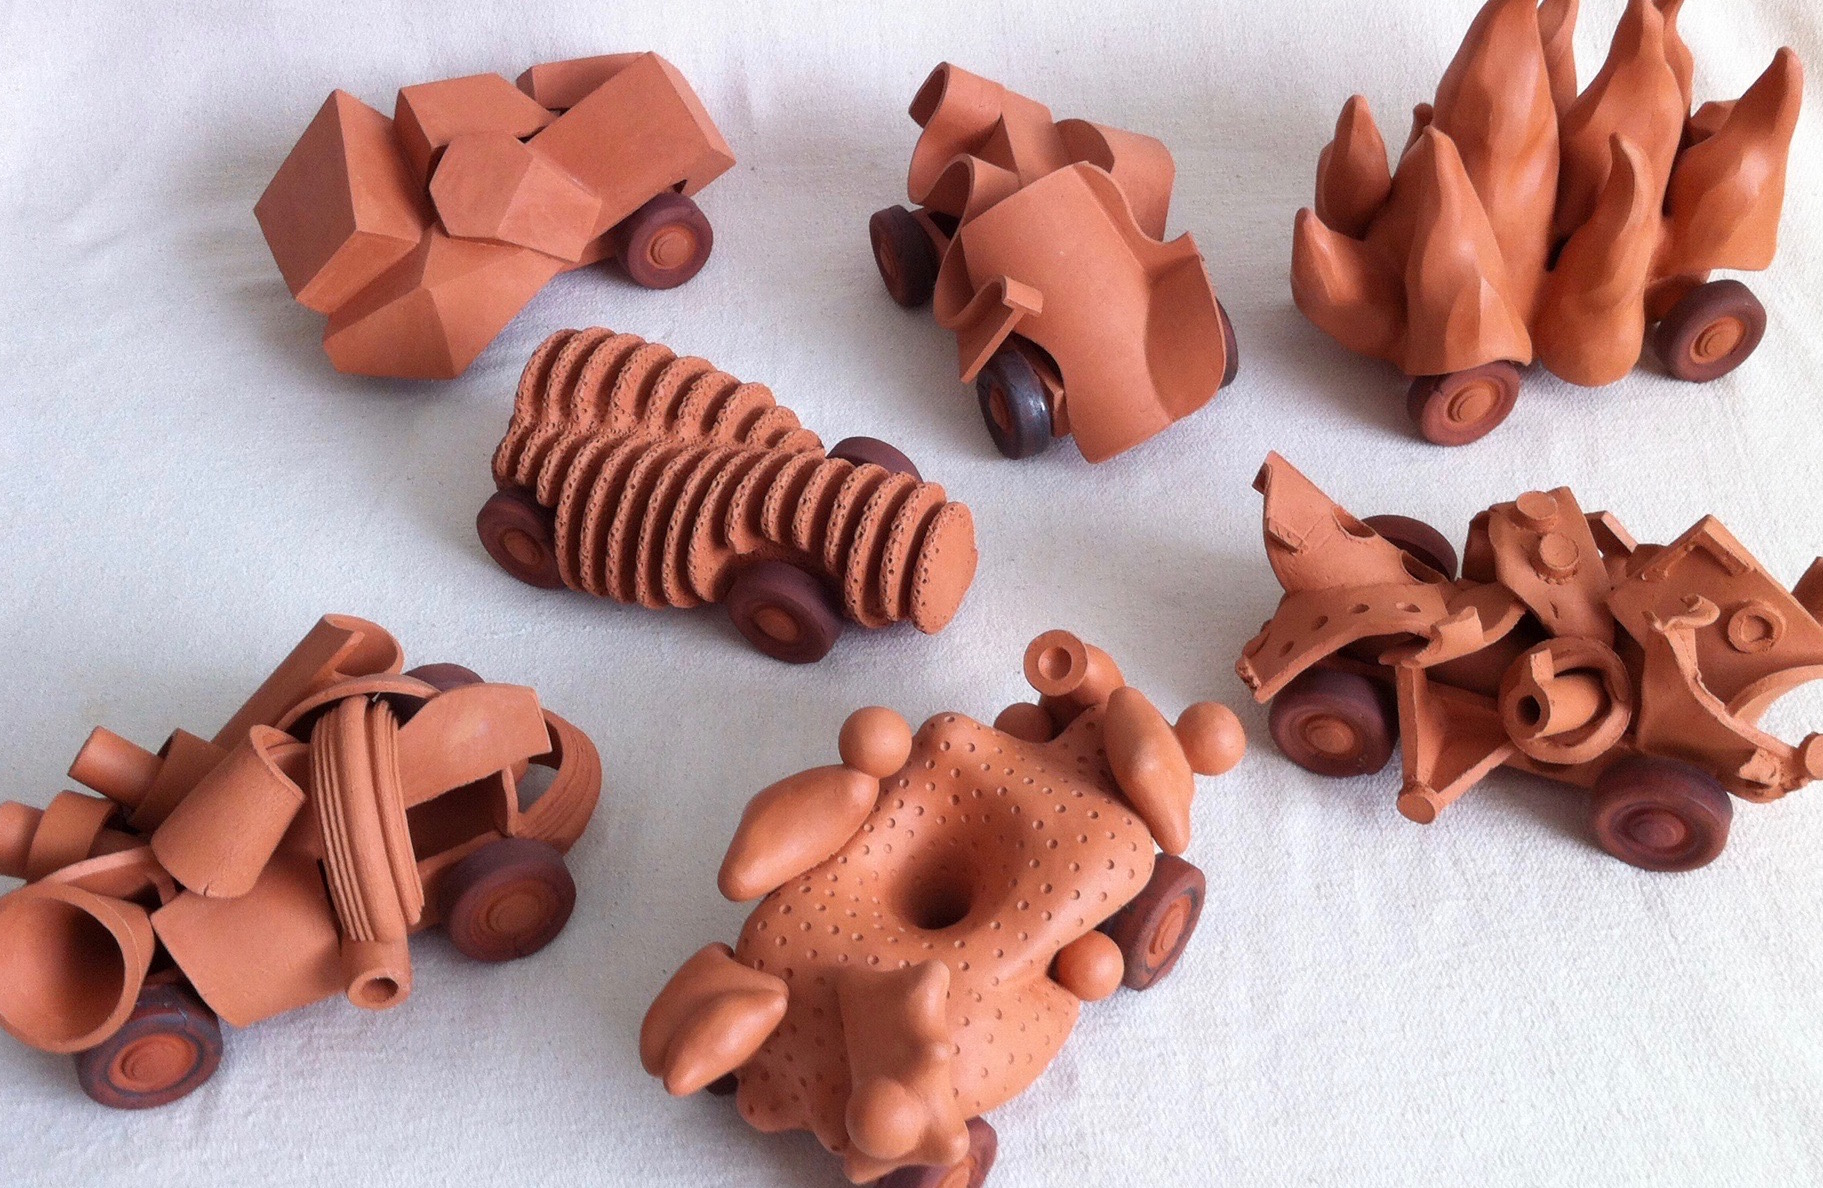 A series of nine 'cars' made of terra-cotta